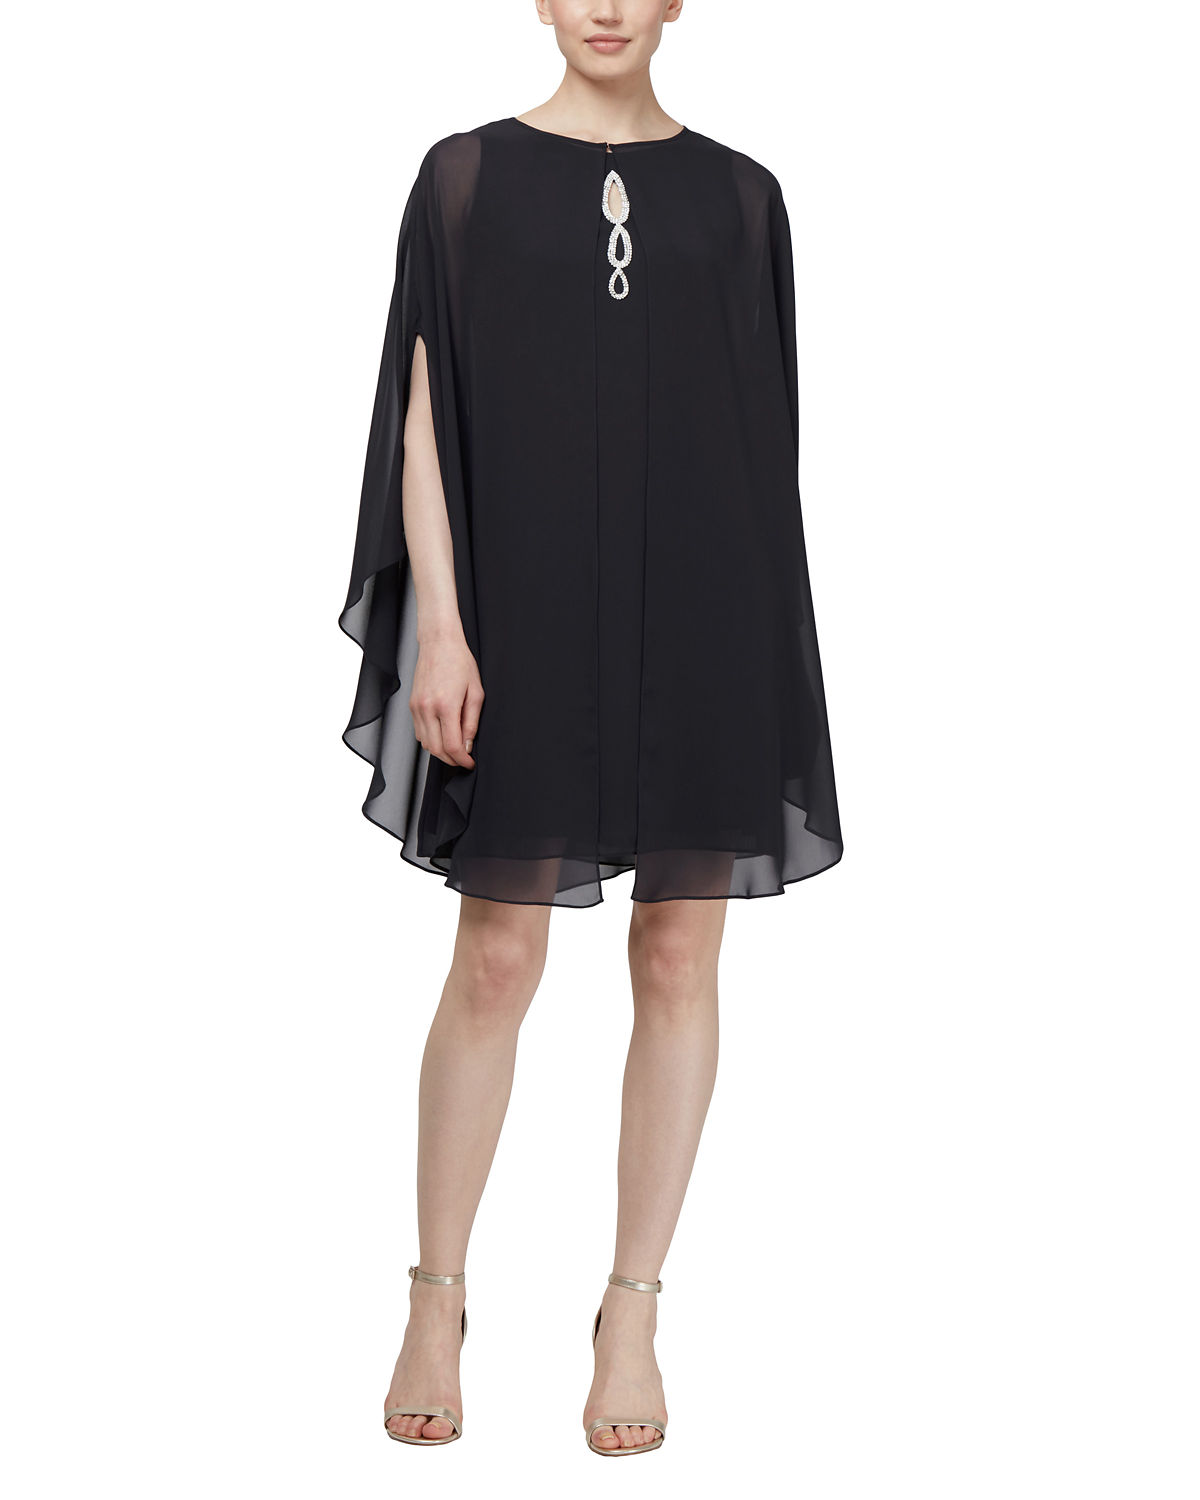 Beaded Keyhole Cocktail Dress with Capelet